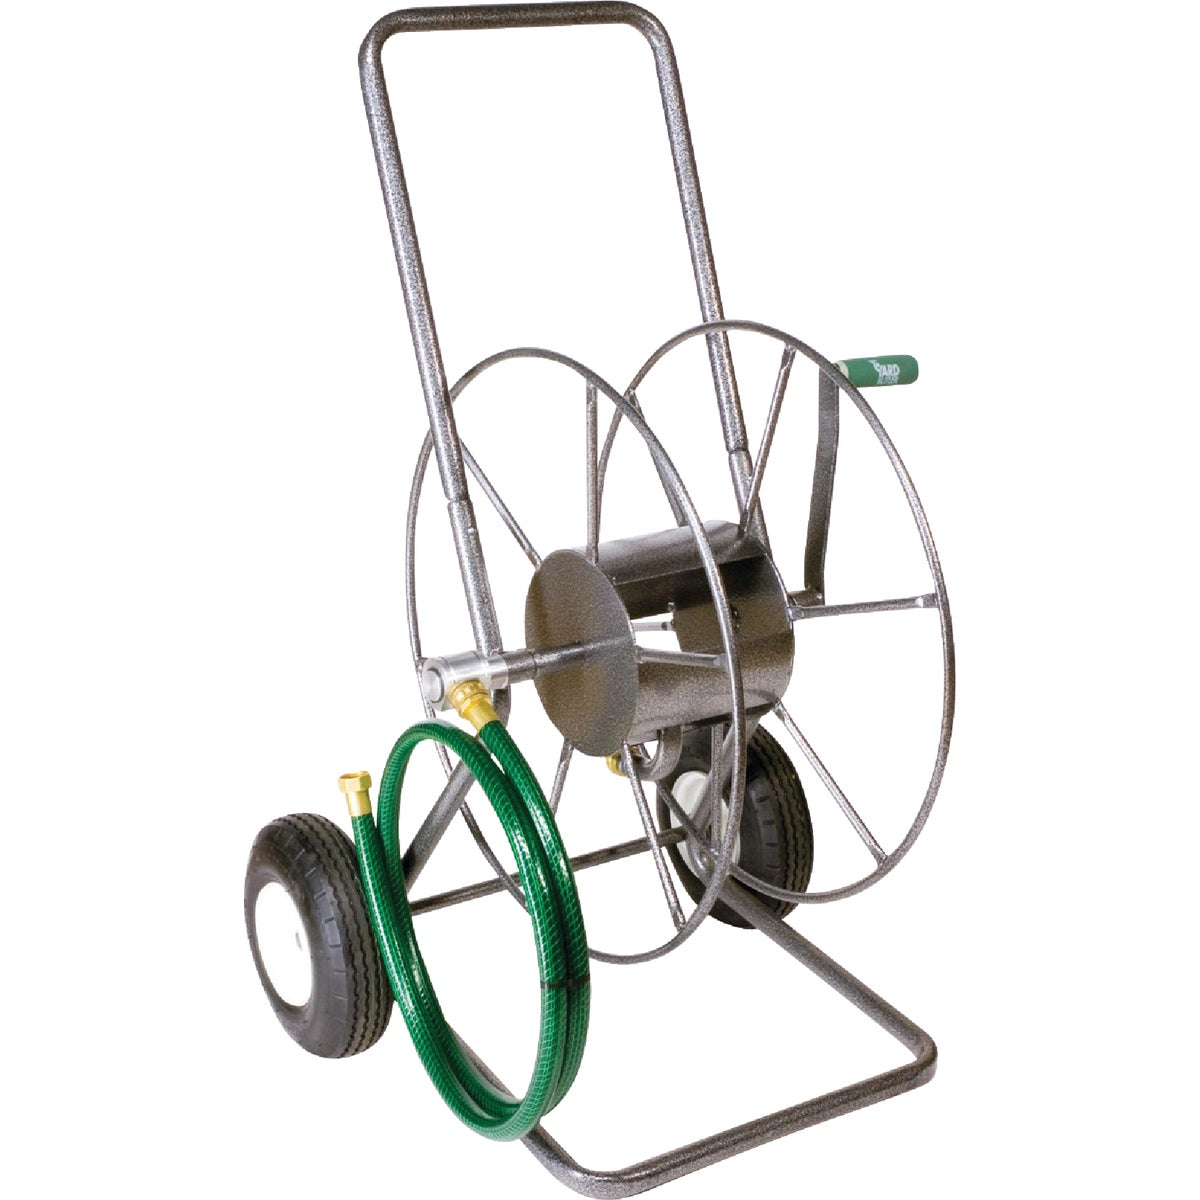 2 WHEEL METAL HOSE REEL - HT2EZ by Lewis Lifetime Tools